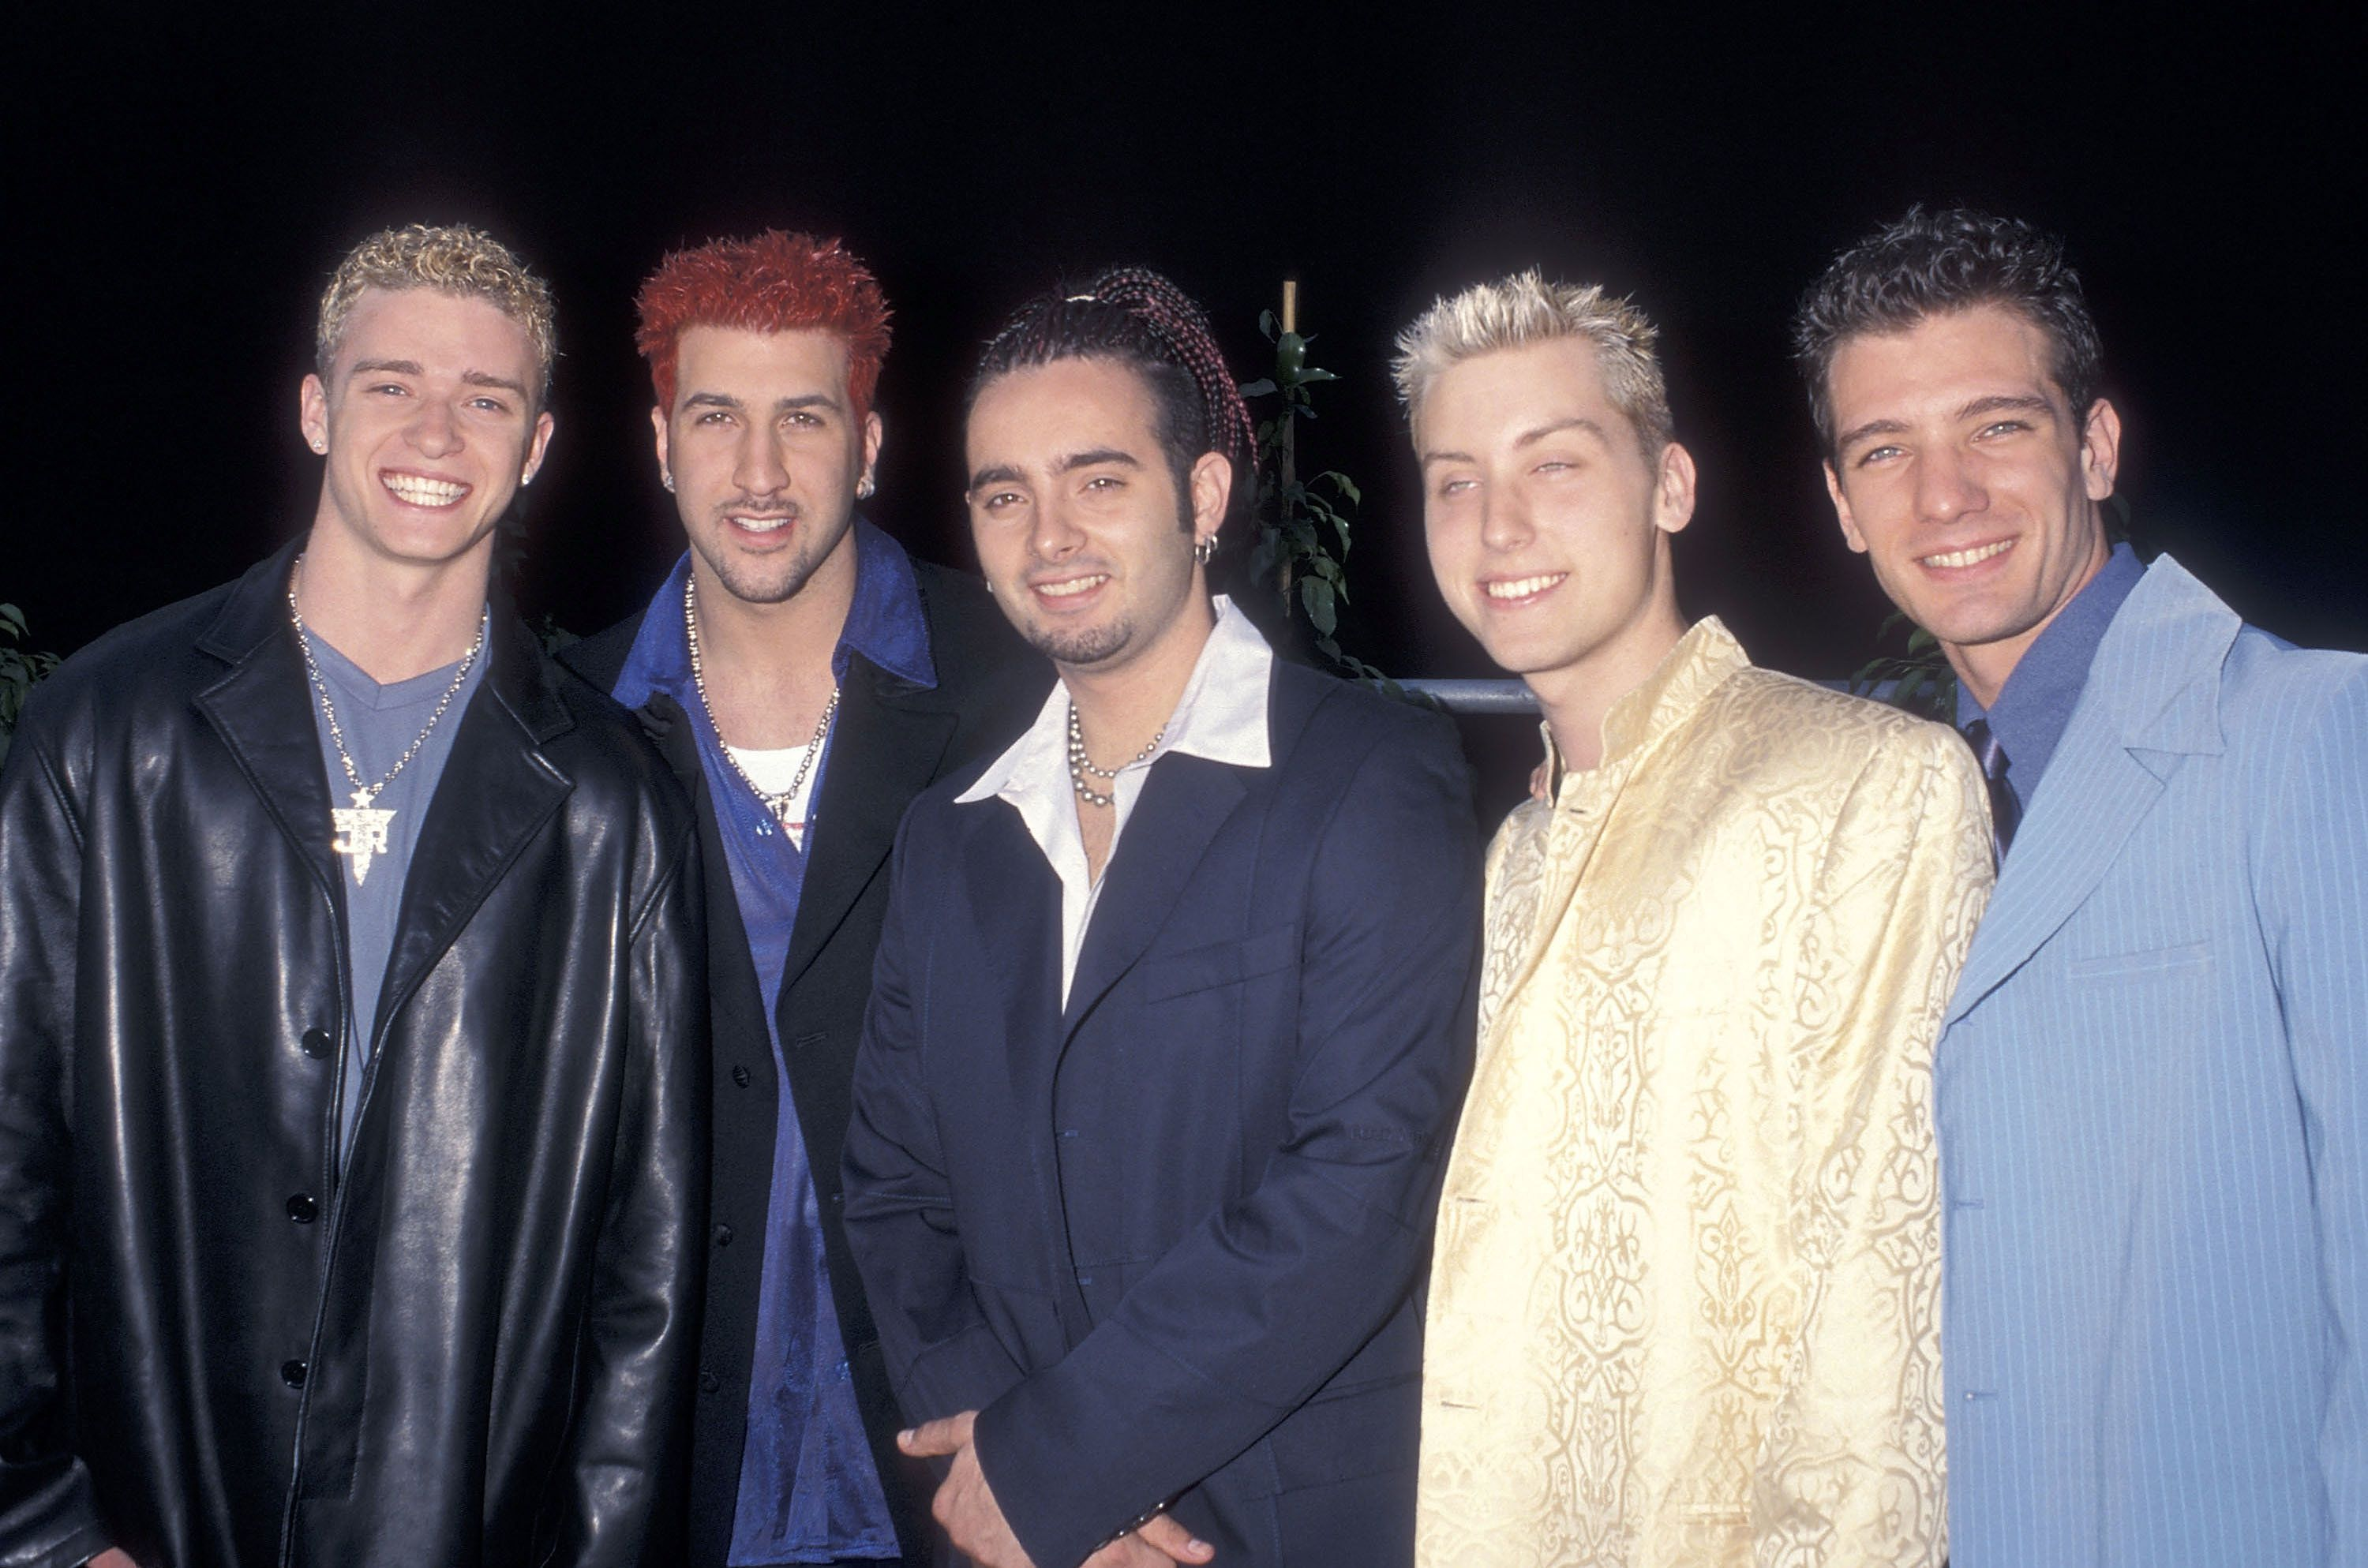 LOS ANGELES - MAY 25:   Pop group NSYNC: Justin Timberlake, Joey Fatone, Chris Kirkpatrick, Lance Bass and JC Chasez attend the Fifth Annual Blockbuster Entertainement Awards on May 25, 1999 at the Shrine Auditorium in Los Angeles, California. (Photo by Ron Galella, Ltd./WireImage)